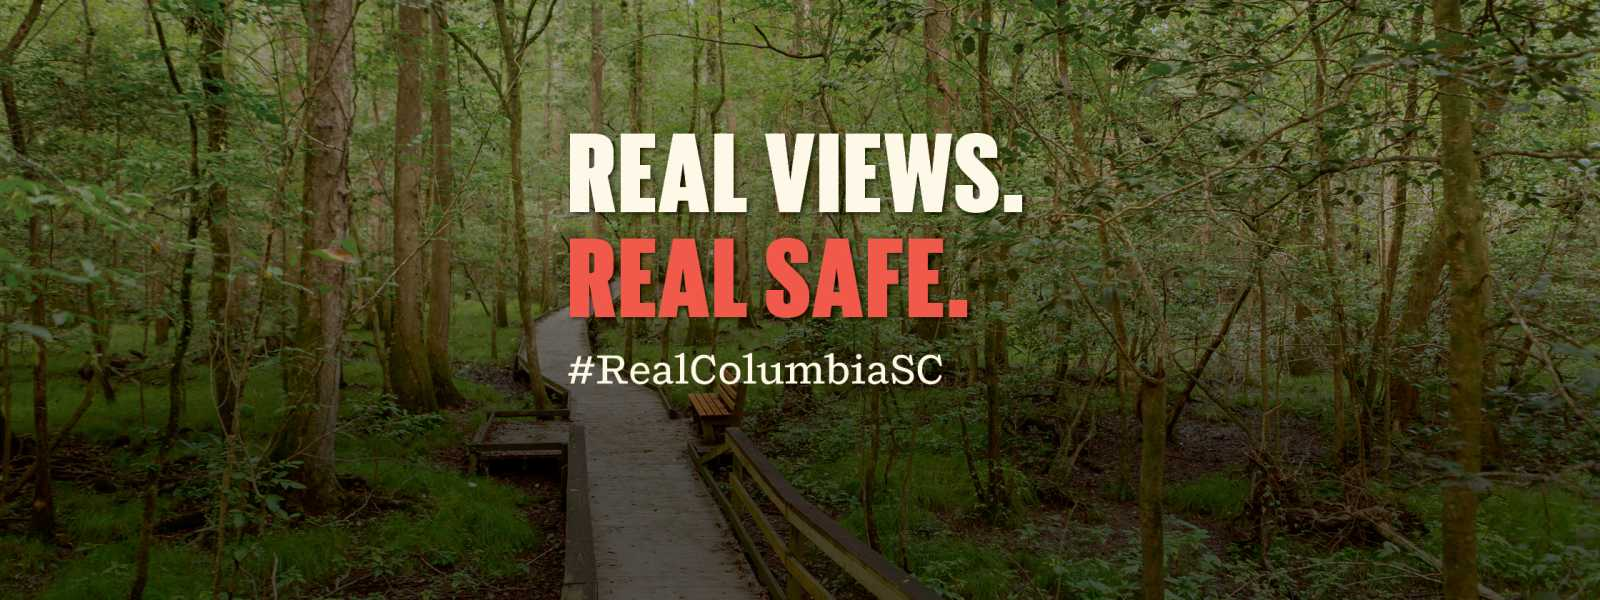 Real Views. Real Safe.